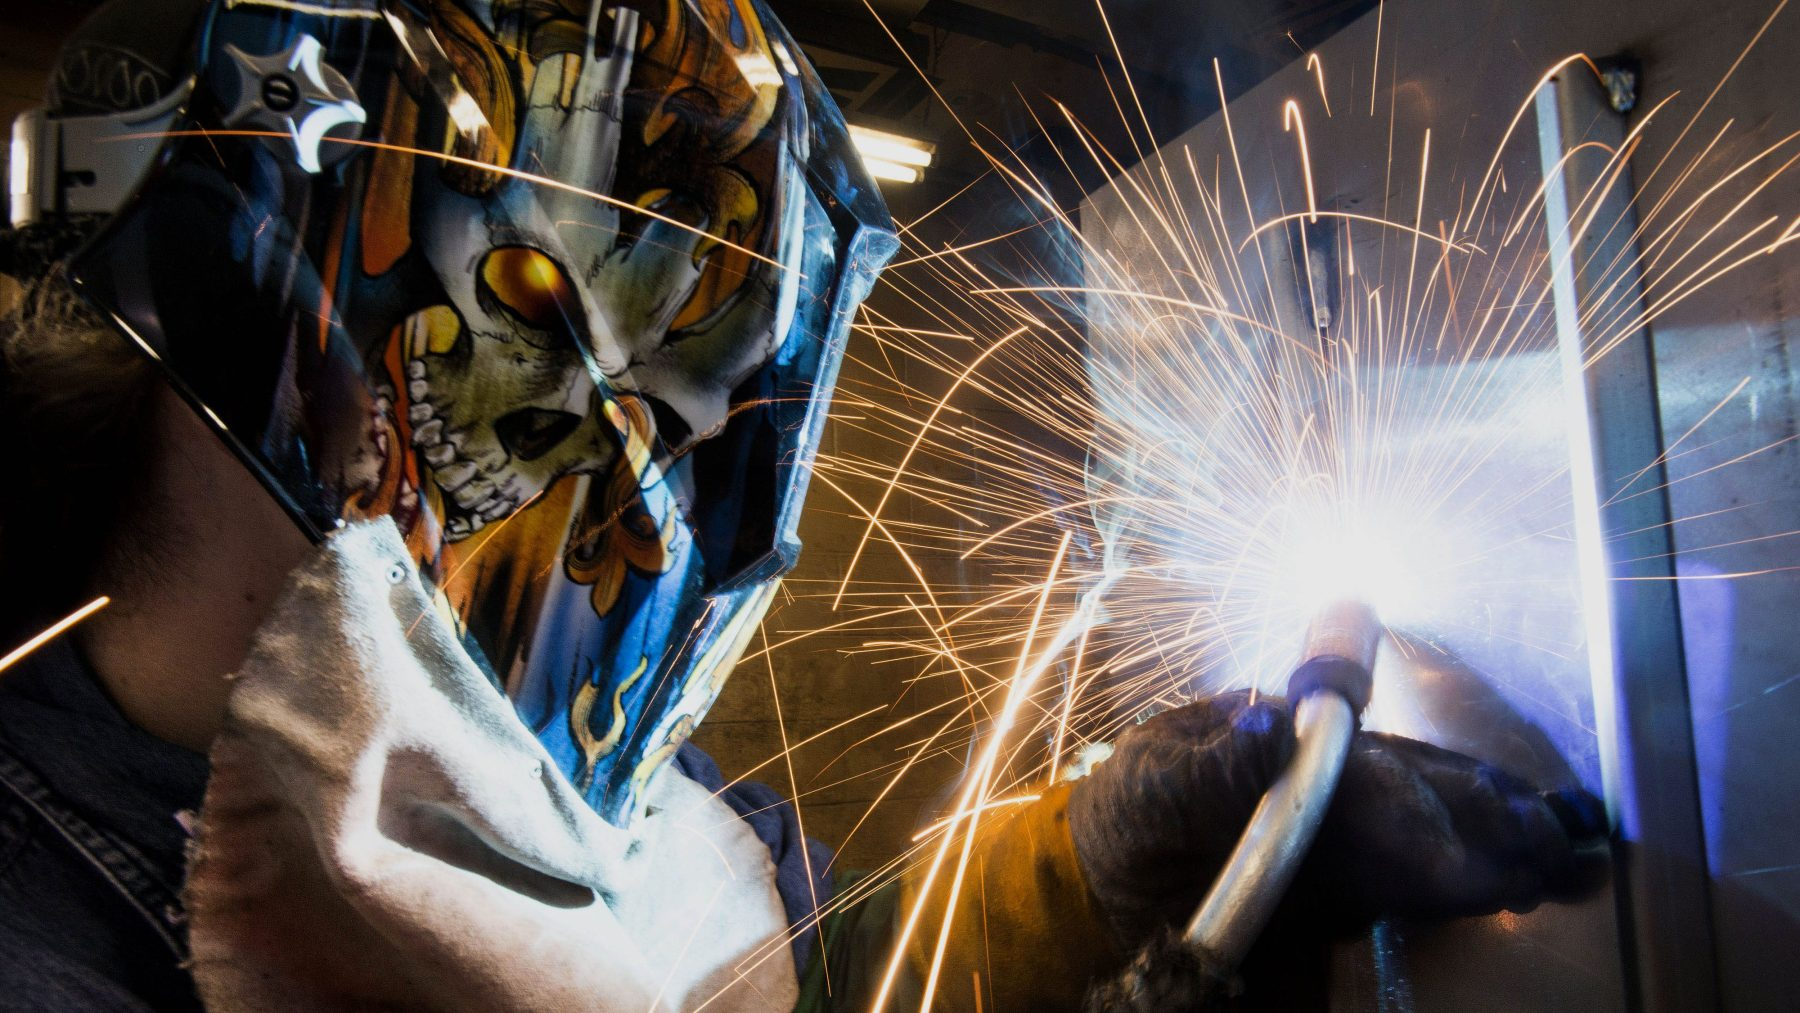 An employee uses a mig welder to create a welding beed on the inside seem of a Pioneer coal stove at the Leisure Line Stove Co. facility in Berwick, Pennsylvania, U.S., on Friday, Aug. 30, 2013. (Ty Wright/Bloomberg via Getty Images)